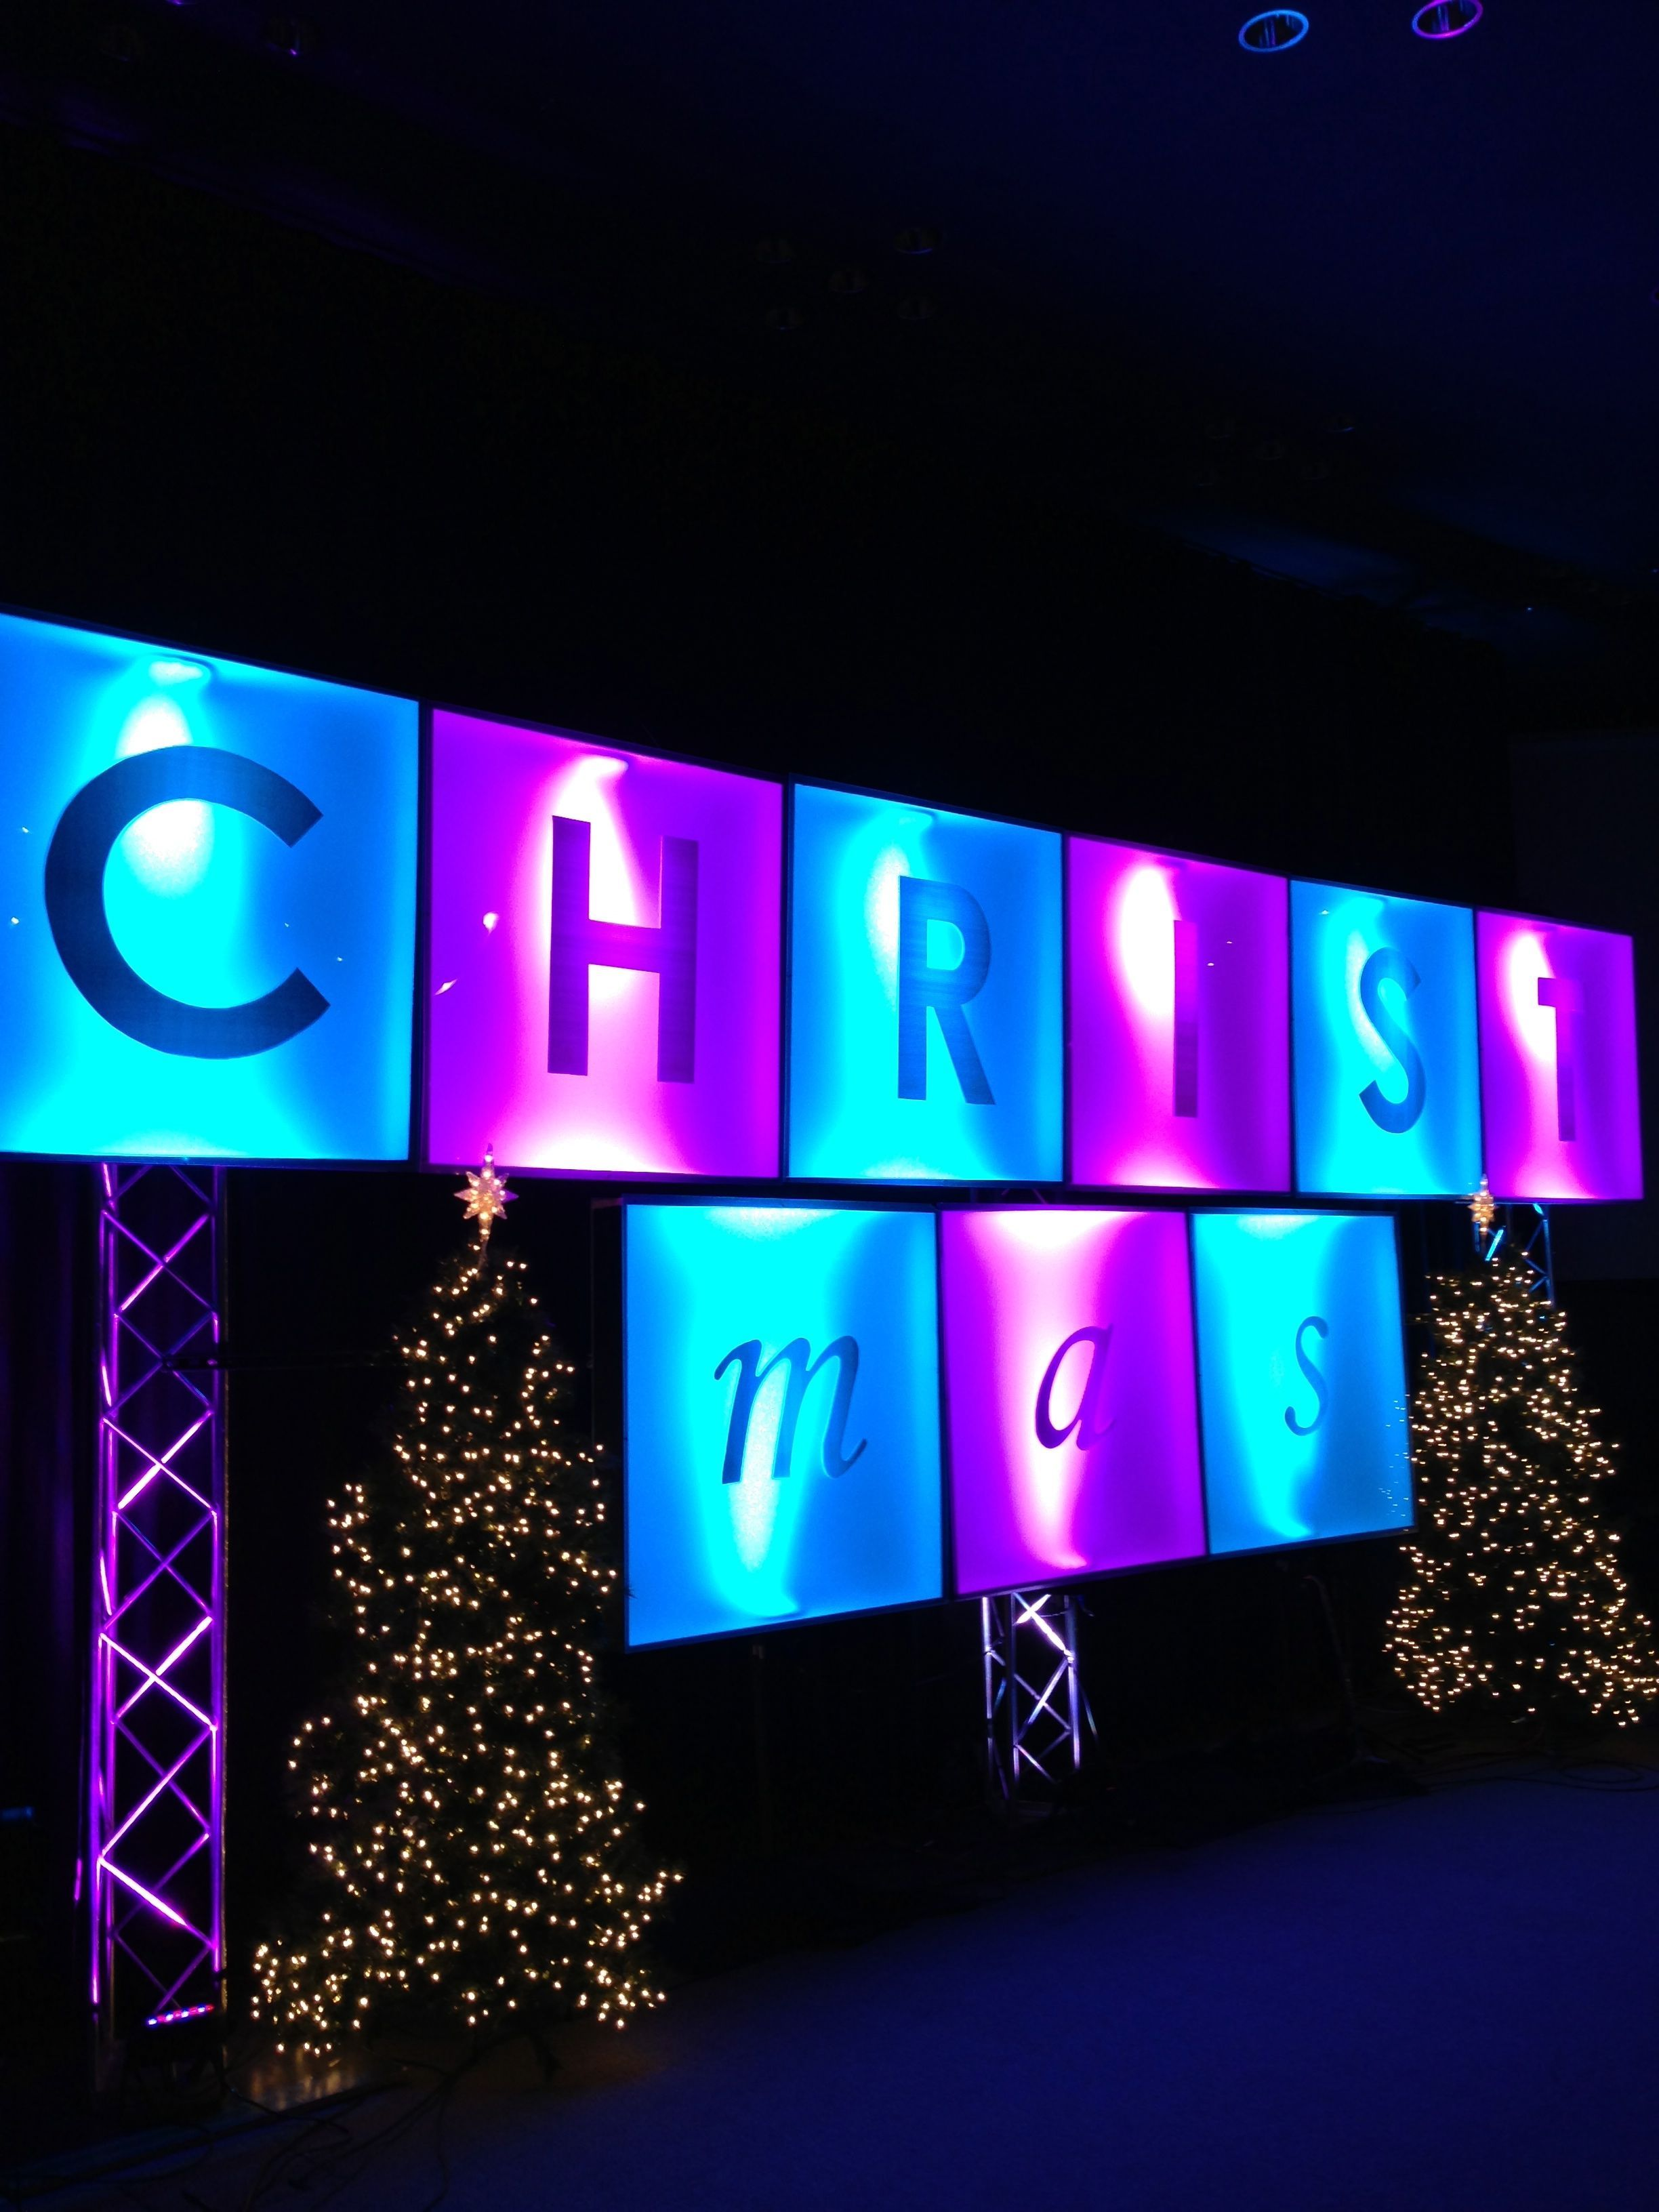 Concert Stage Design Ideas decoration church stage designs for small churcheshome improvement ideas Christmas Stage Set Ideas Christmas Ransom Church Stage Design Ideas